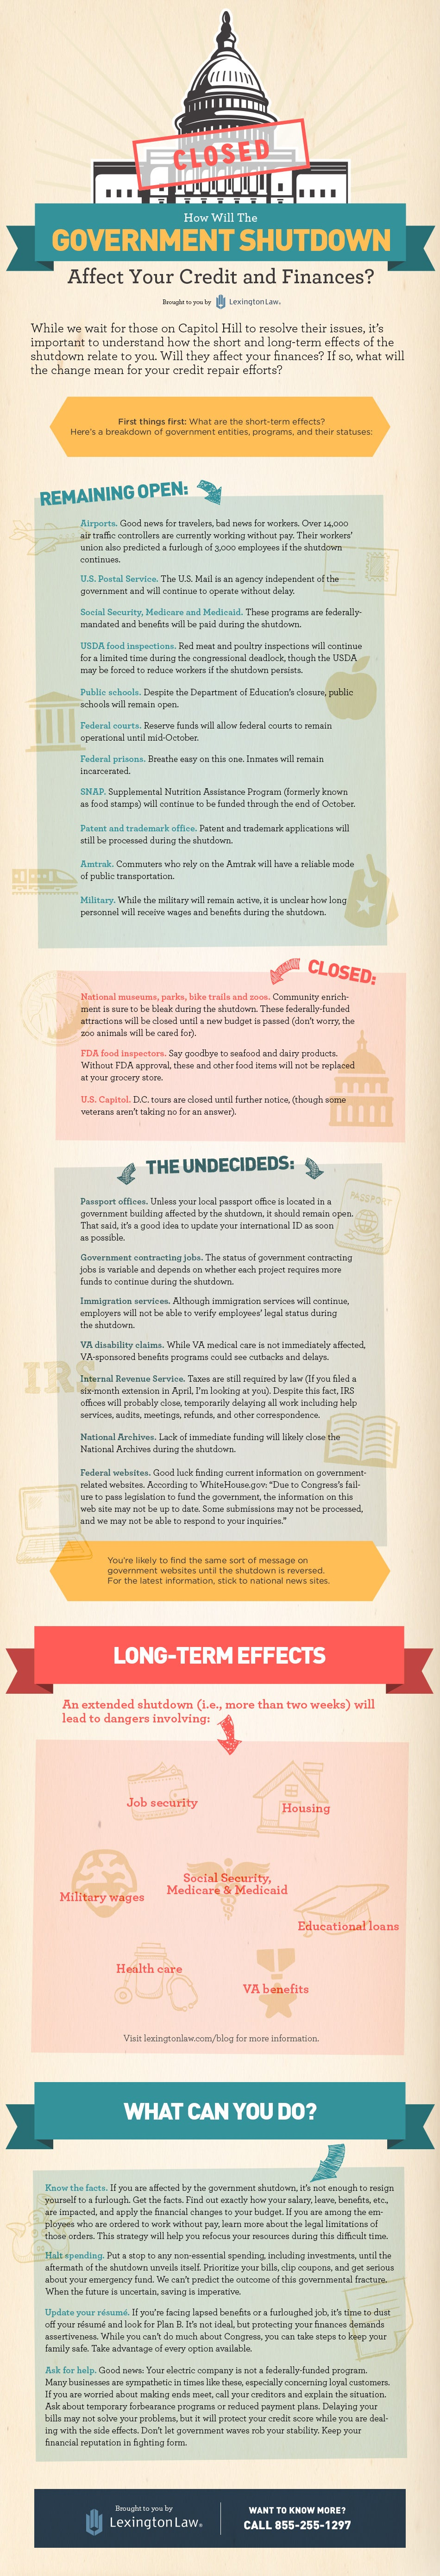 Government shutdown credit and finances infographic